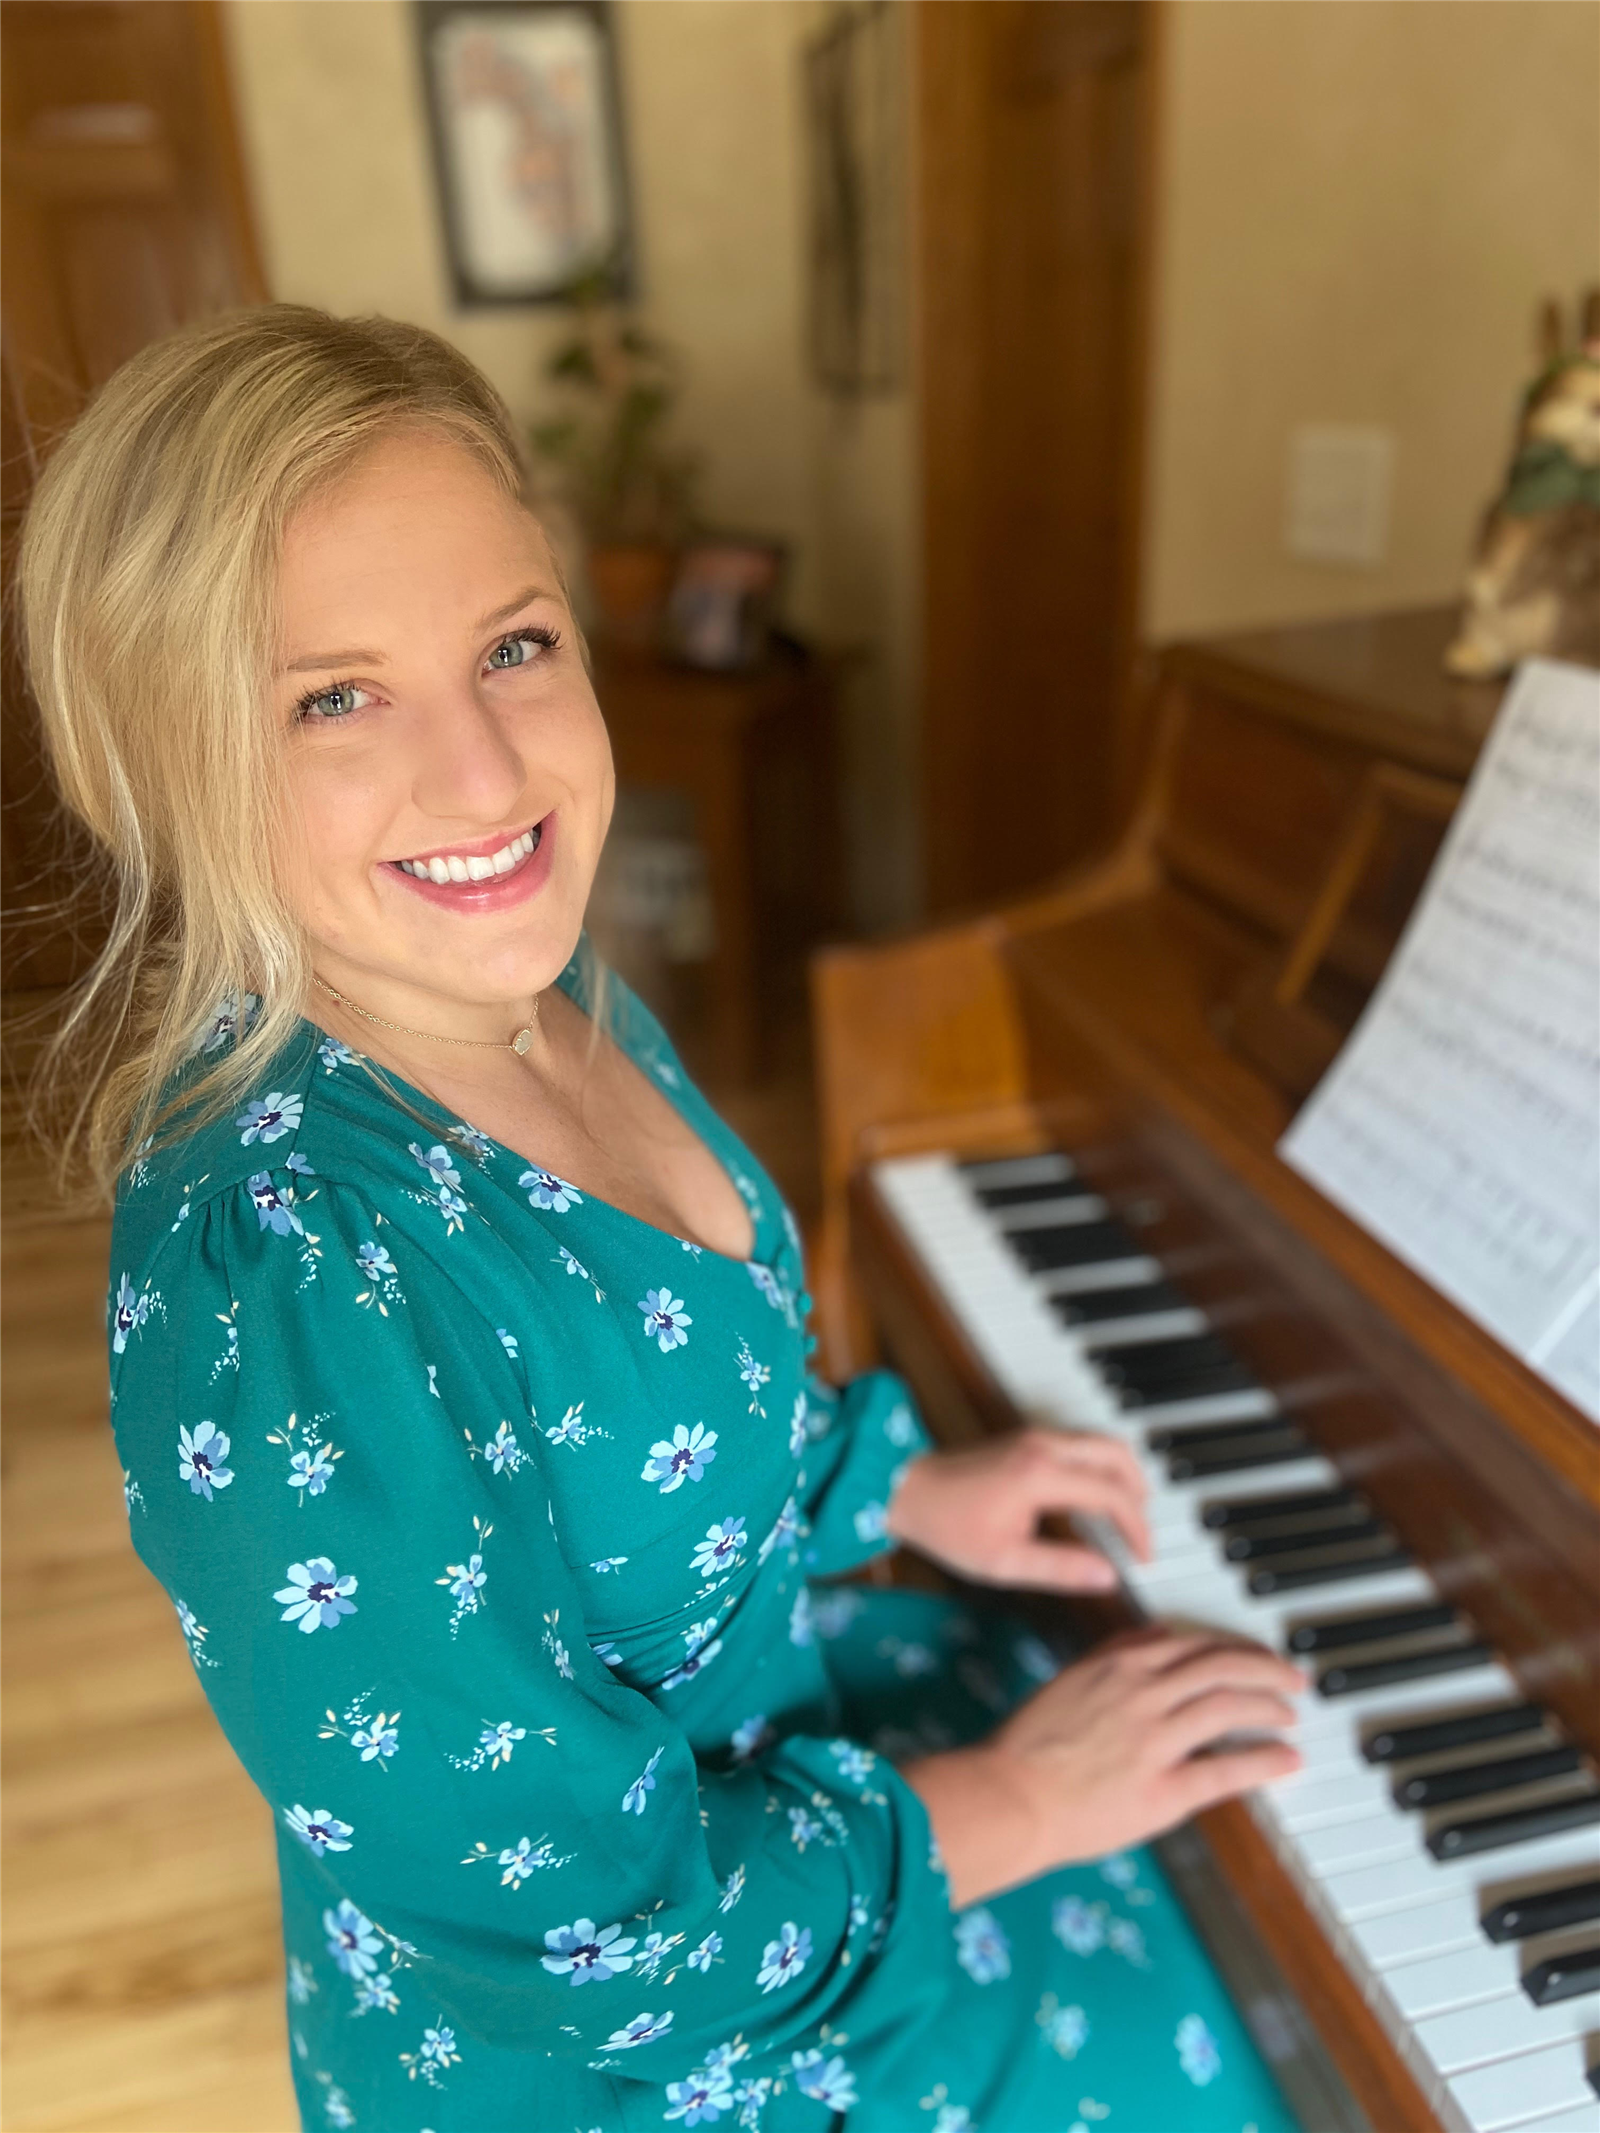 OUSD Senior Alayna Westenberg qualifies for State level Solo and Ensemble Festival with her Piano! (April 8, 2020)